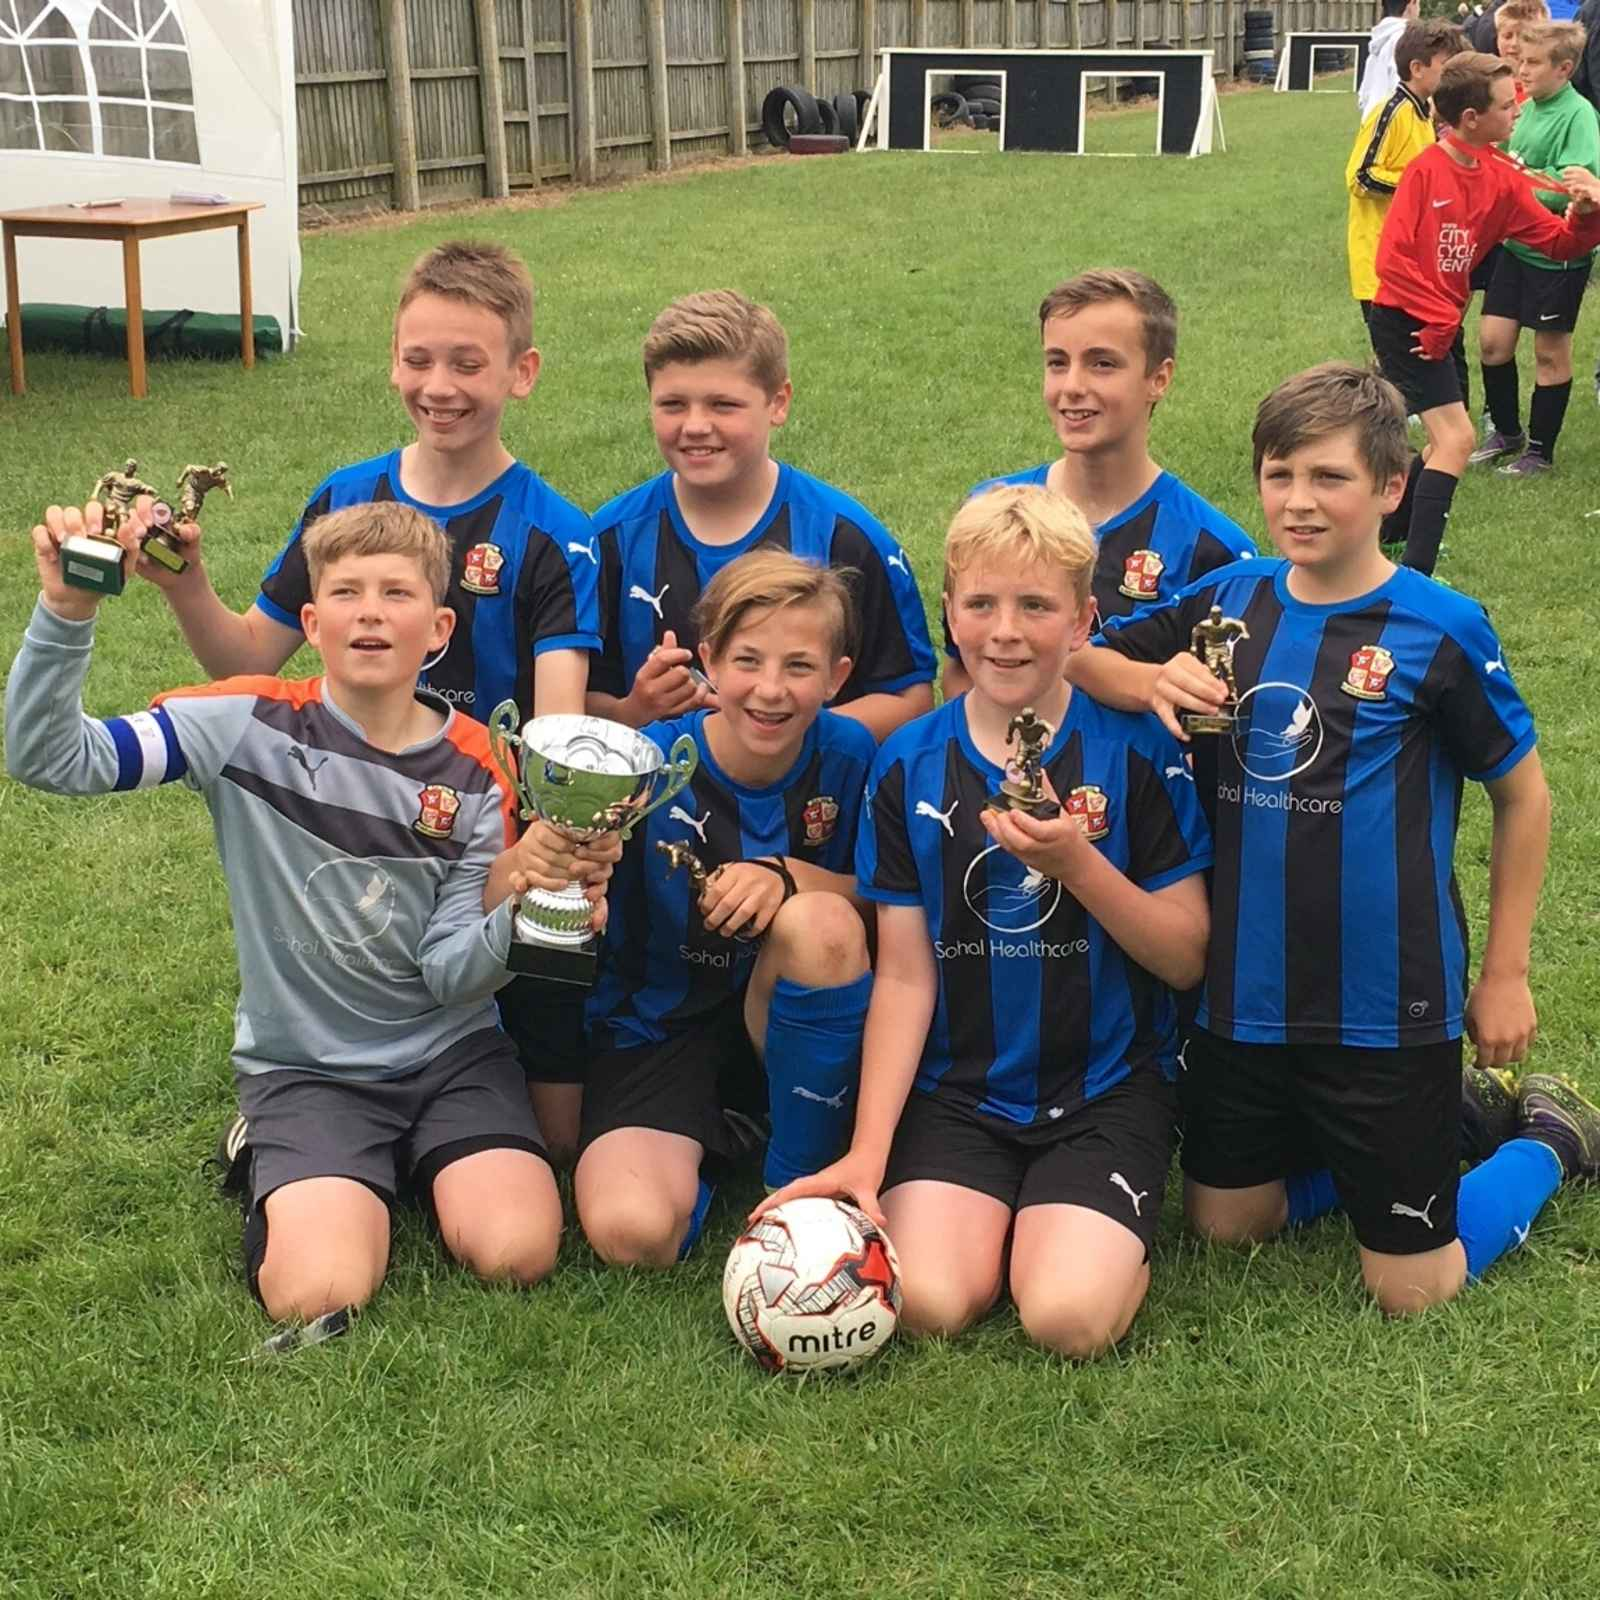 St Ives Rangers images